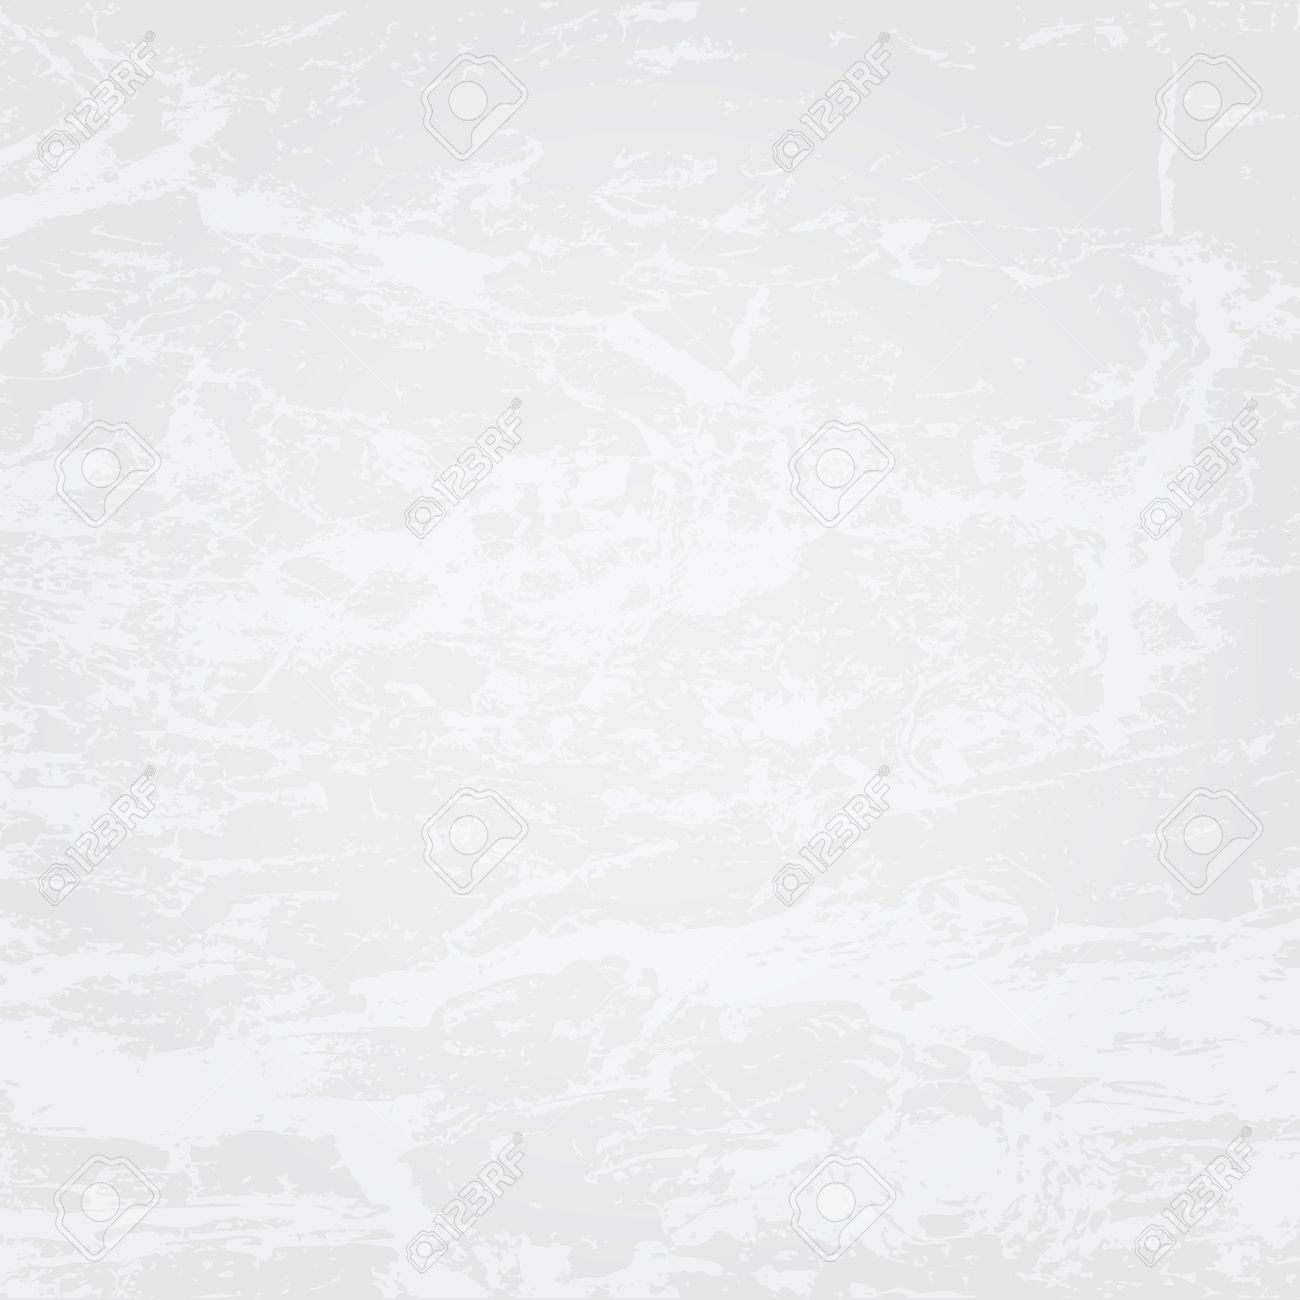 nice marble background - 18217929